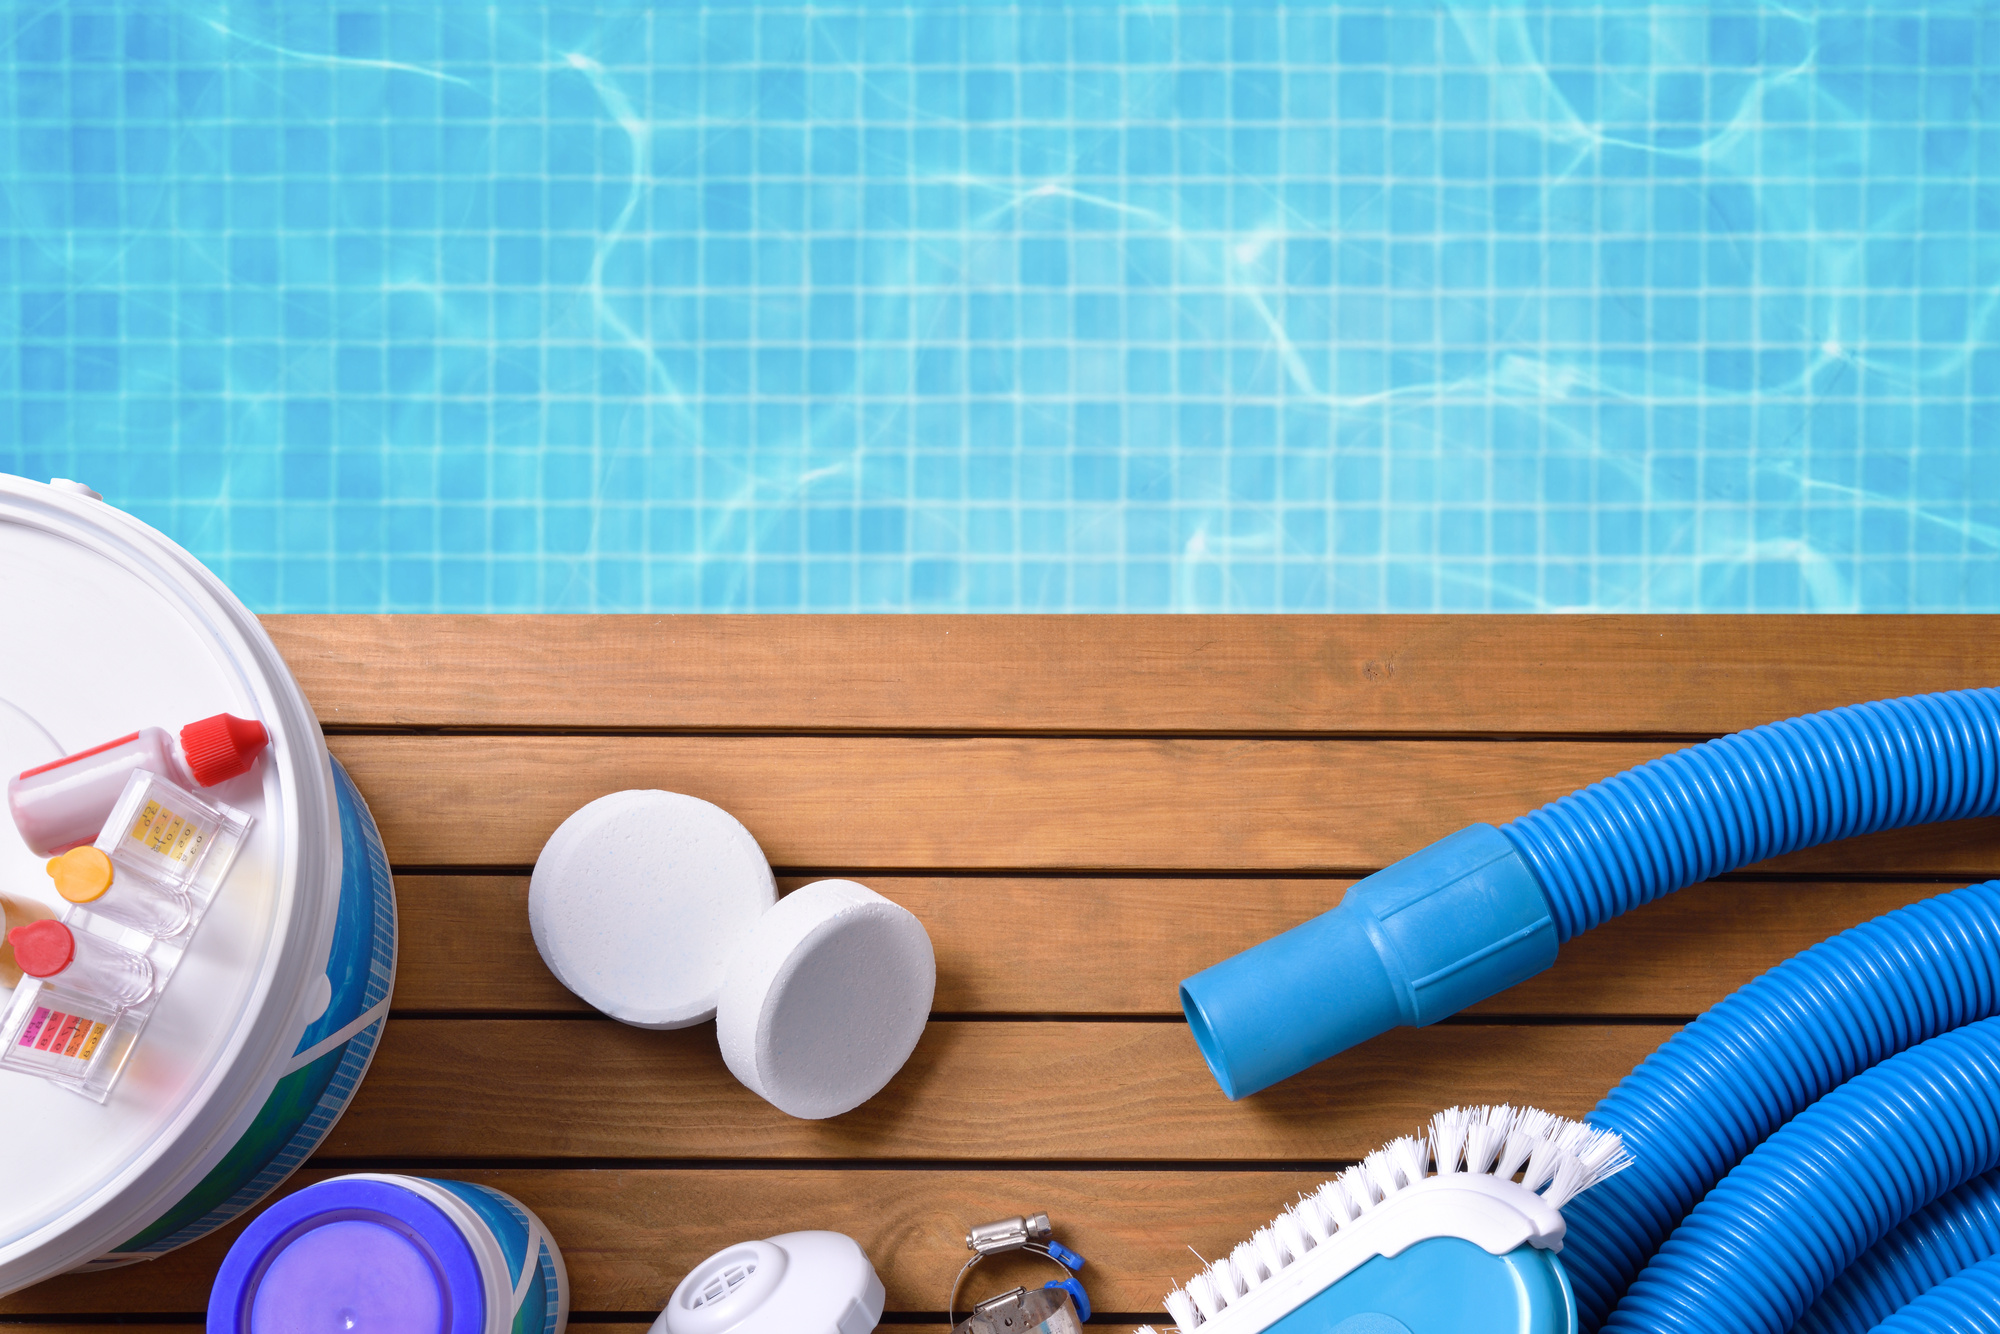 Top 10 Pool Tips to Keep Your Pool Looking Brand New